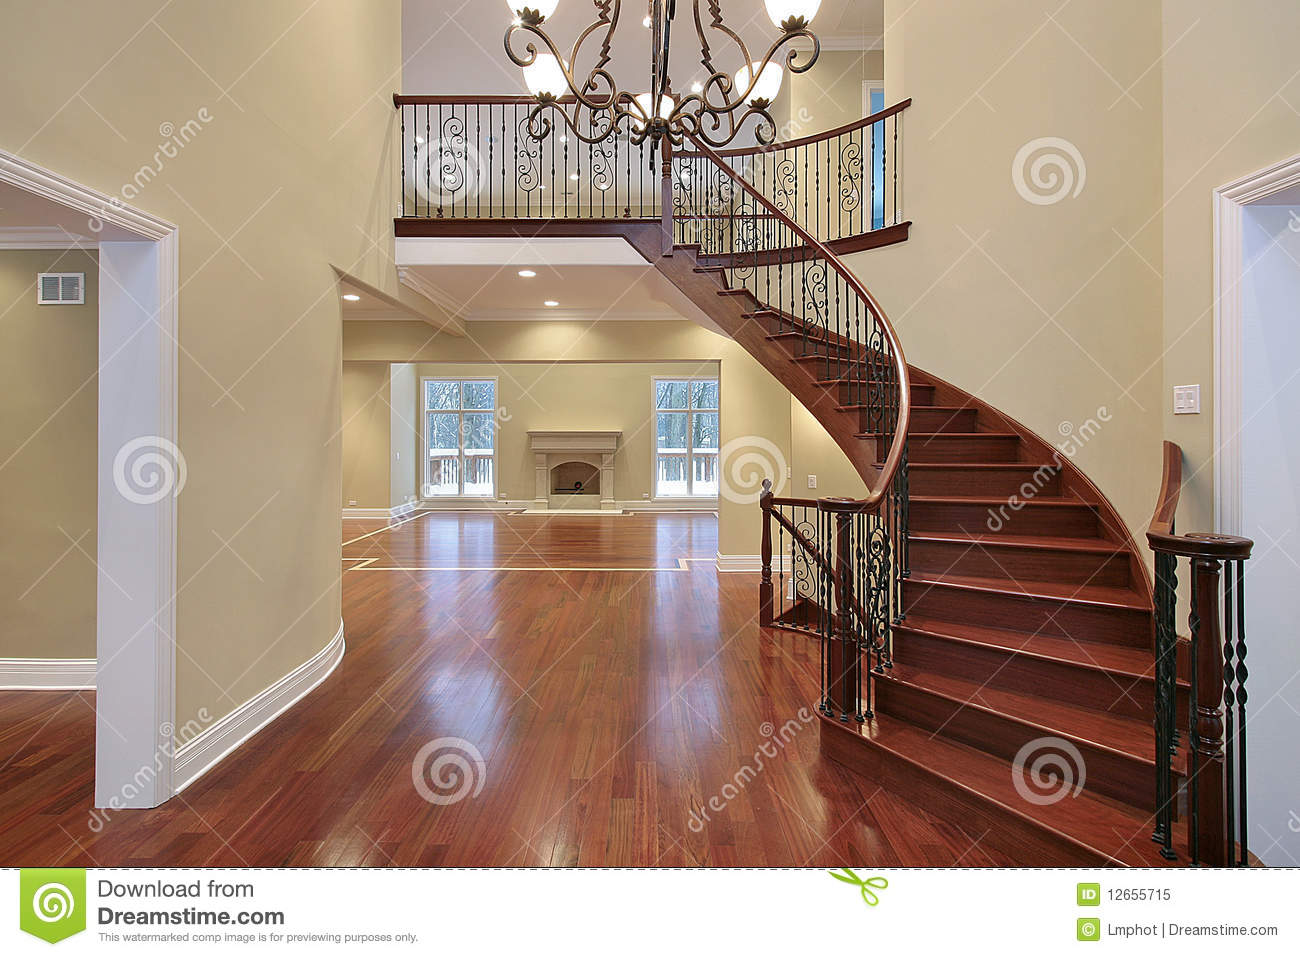 Foyer With Balcony And Curved Staircase Stock Image